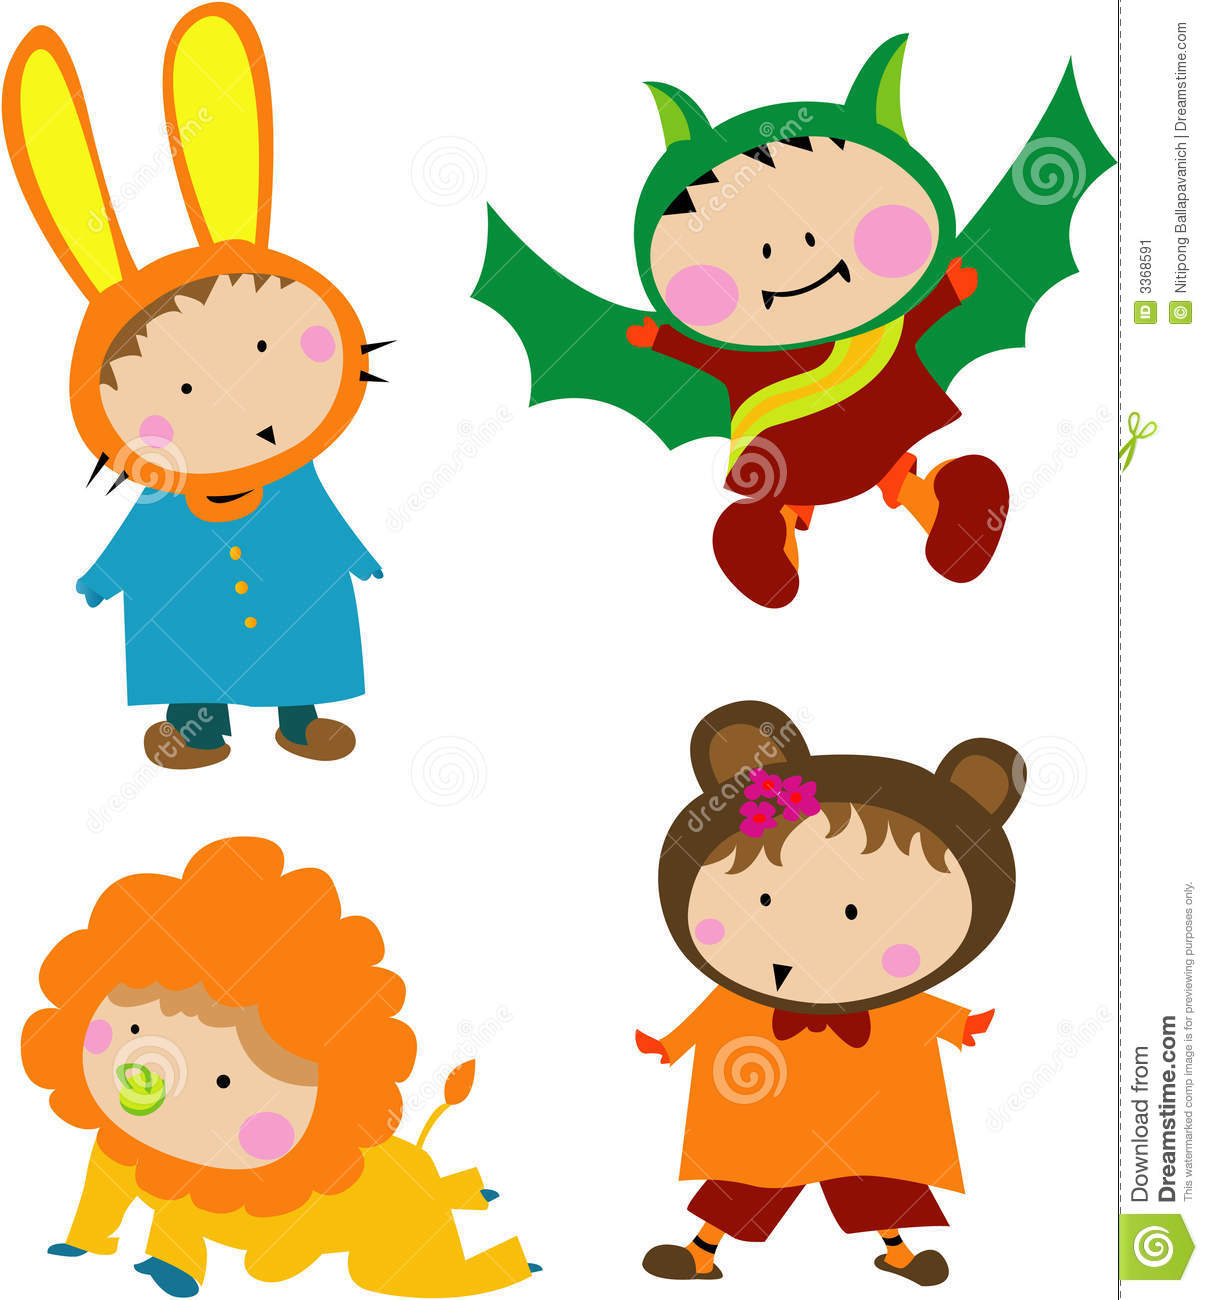 Cute kid clip art.